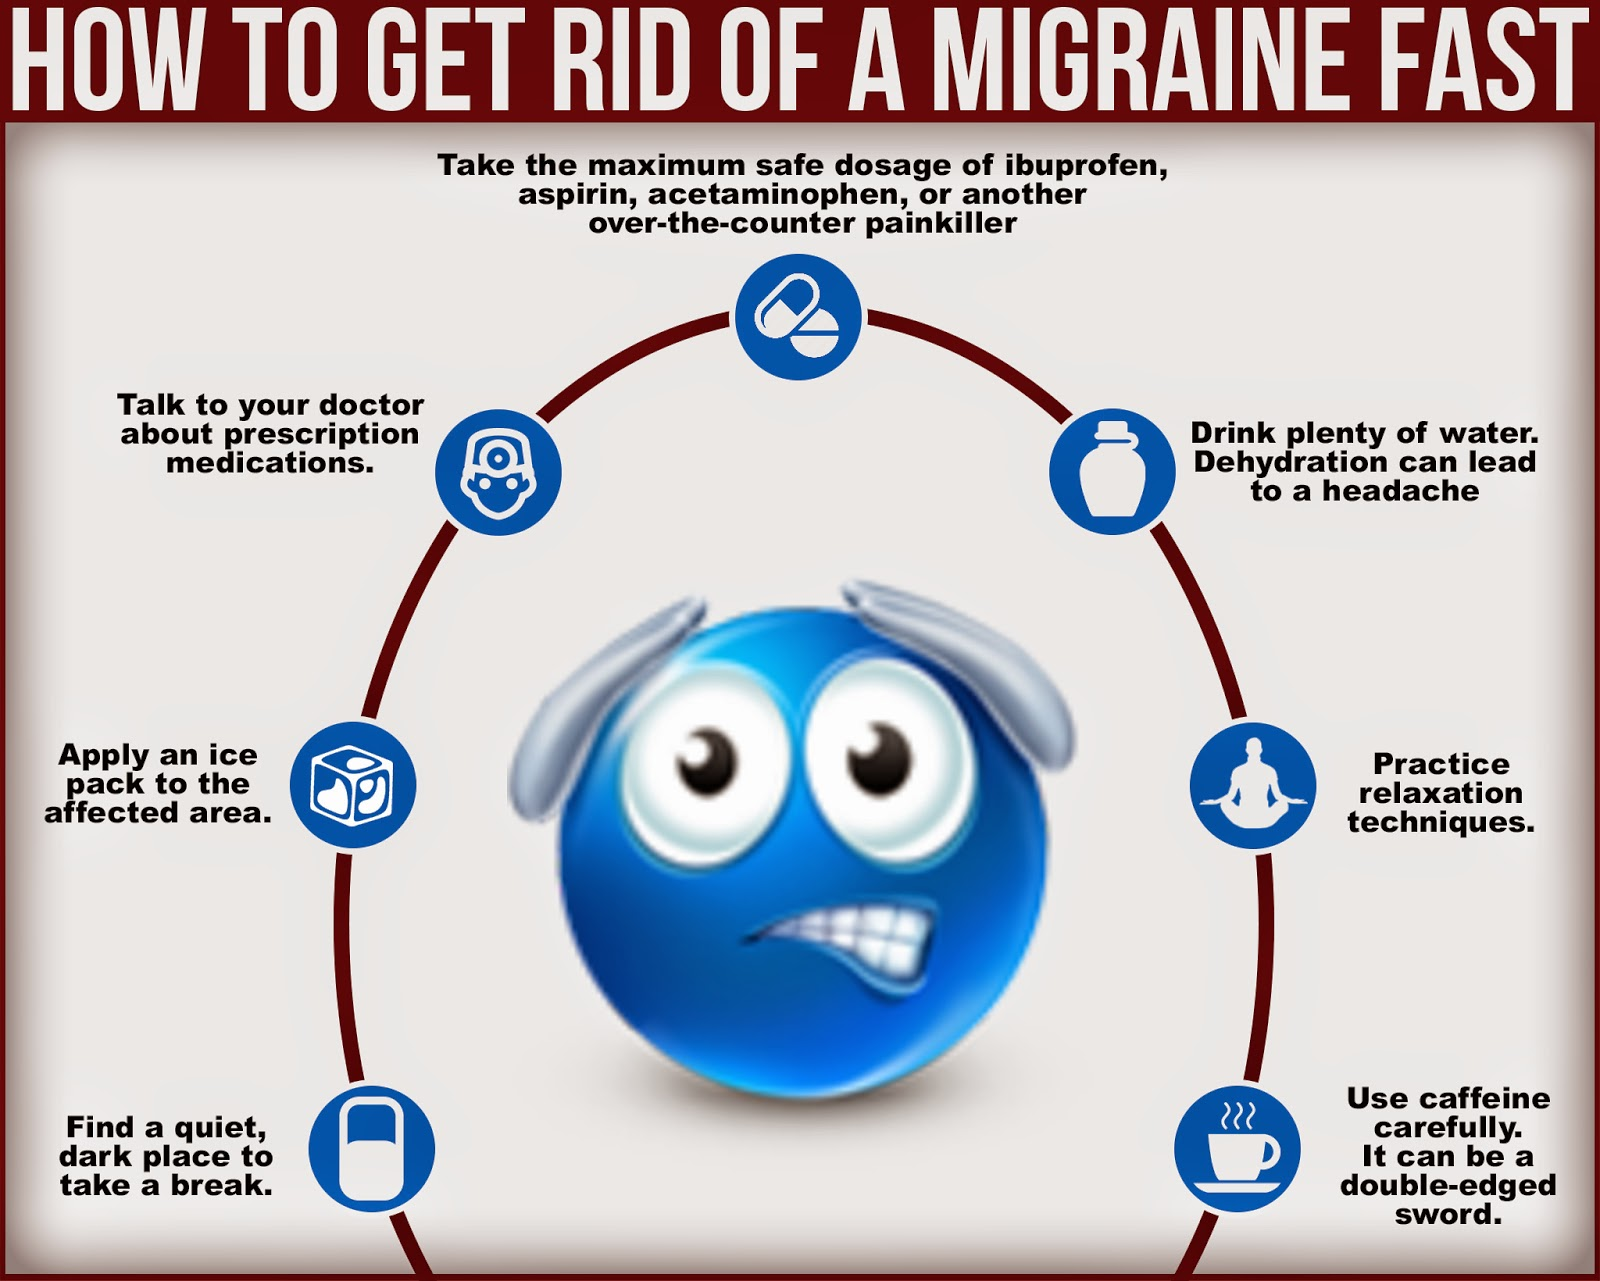 how to get rid of a menstrual migraine fast